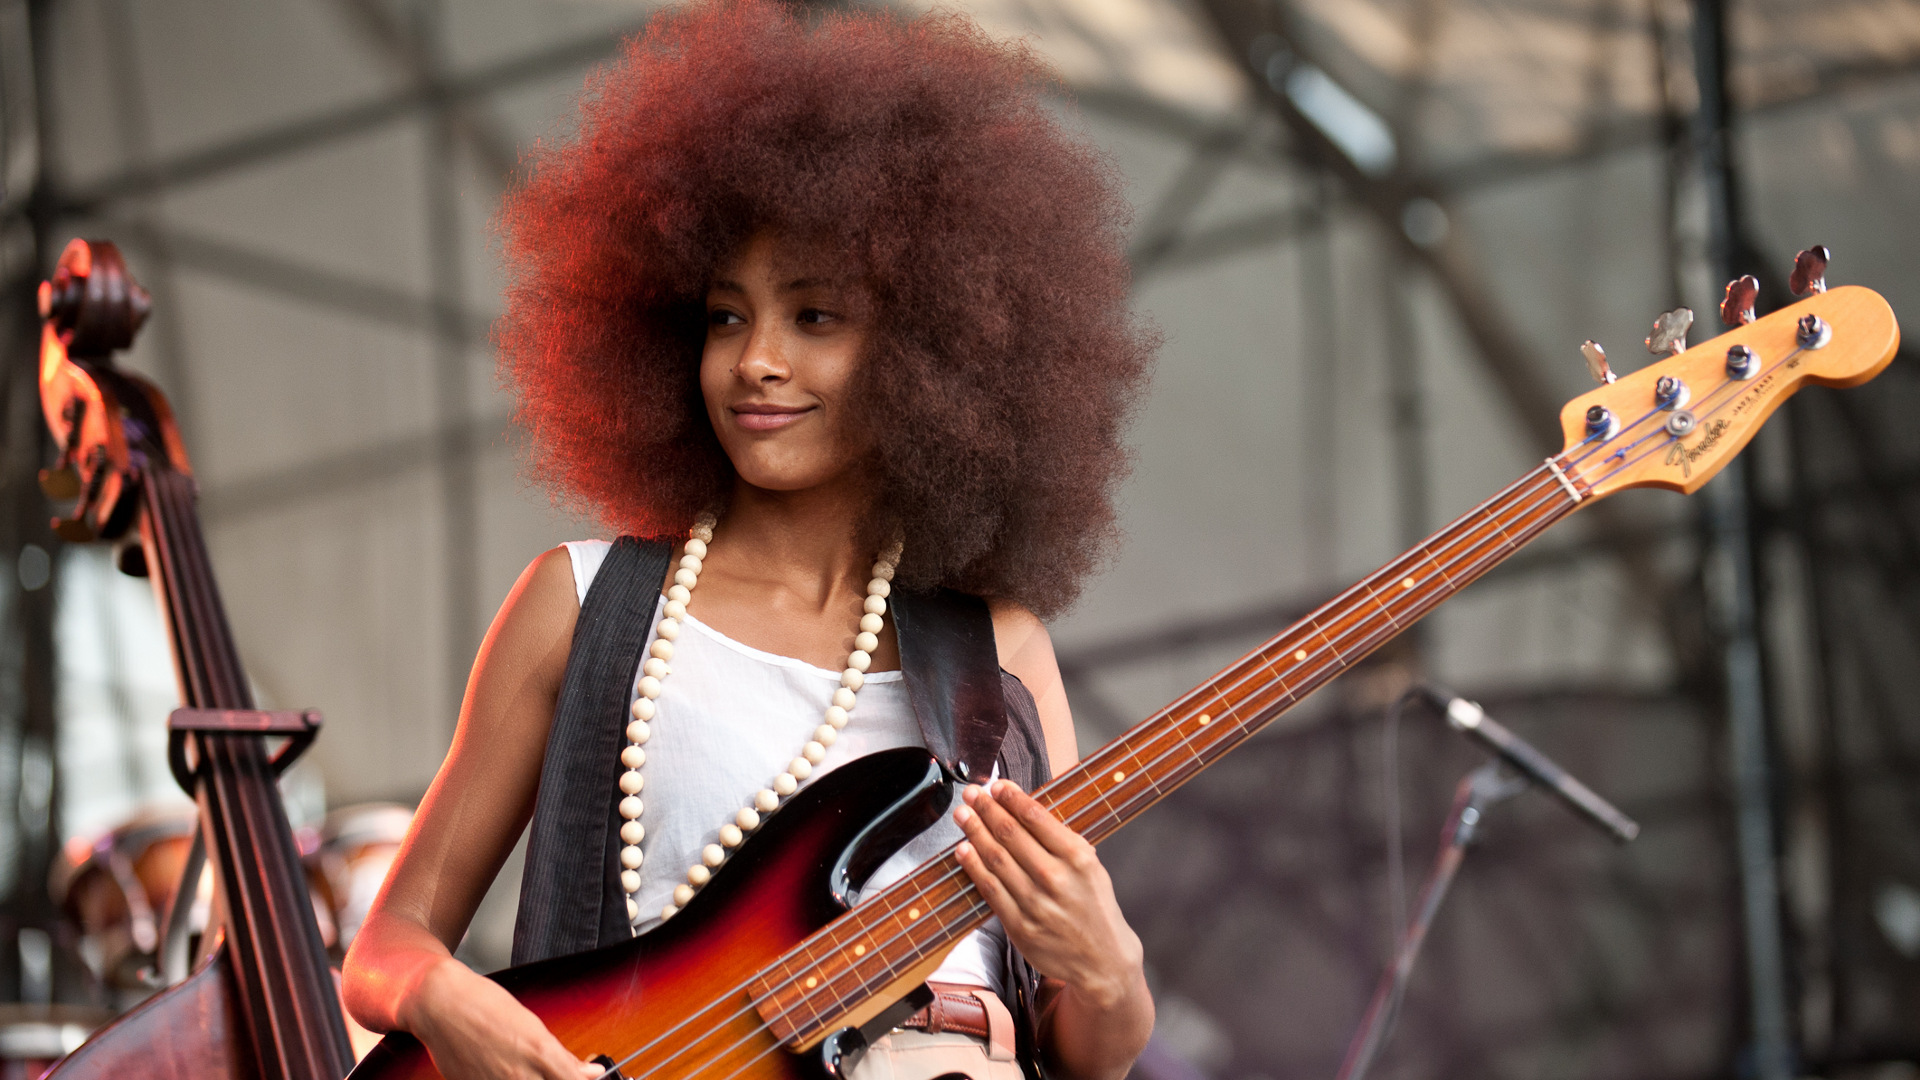 Esperanza Spalding – Musical Prodigy, Jazz Bassist and Singer